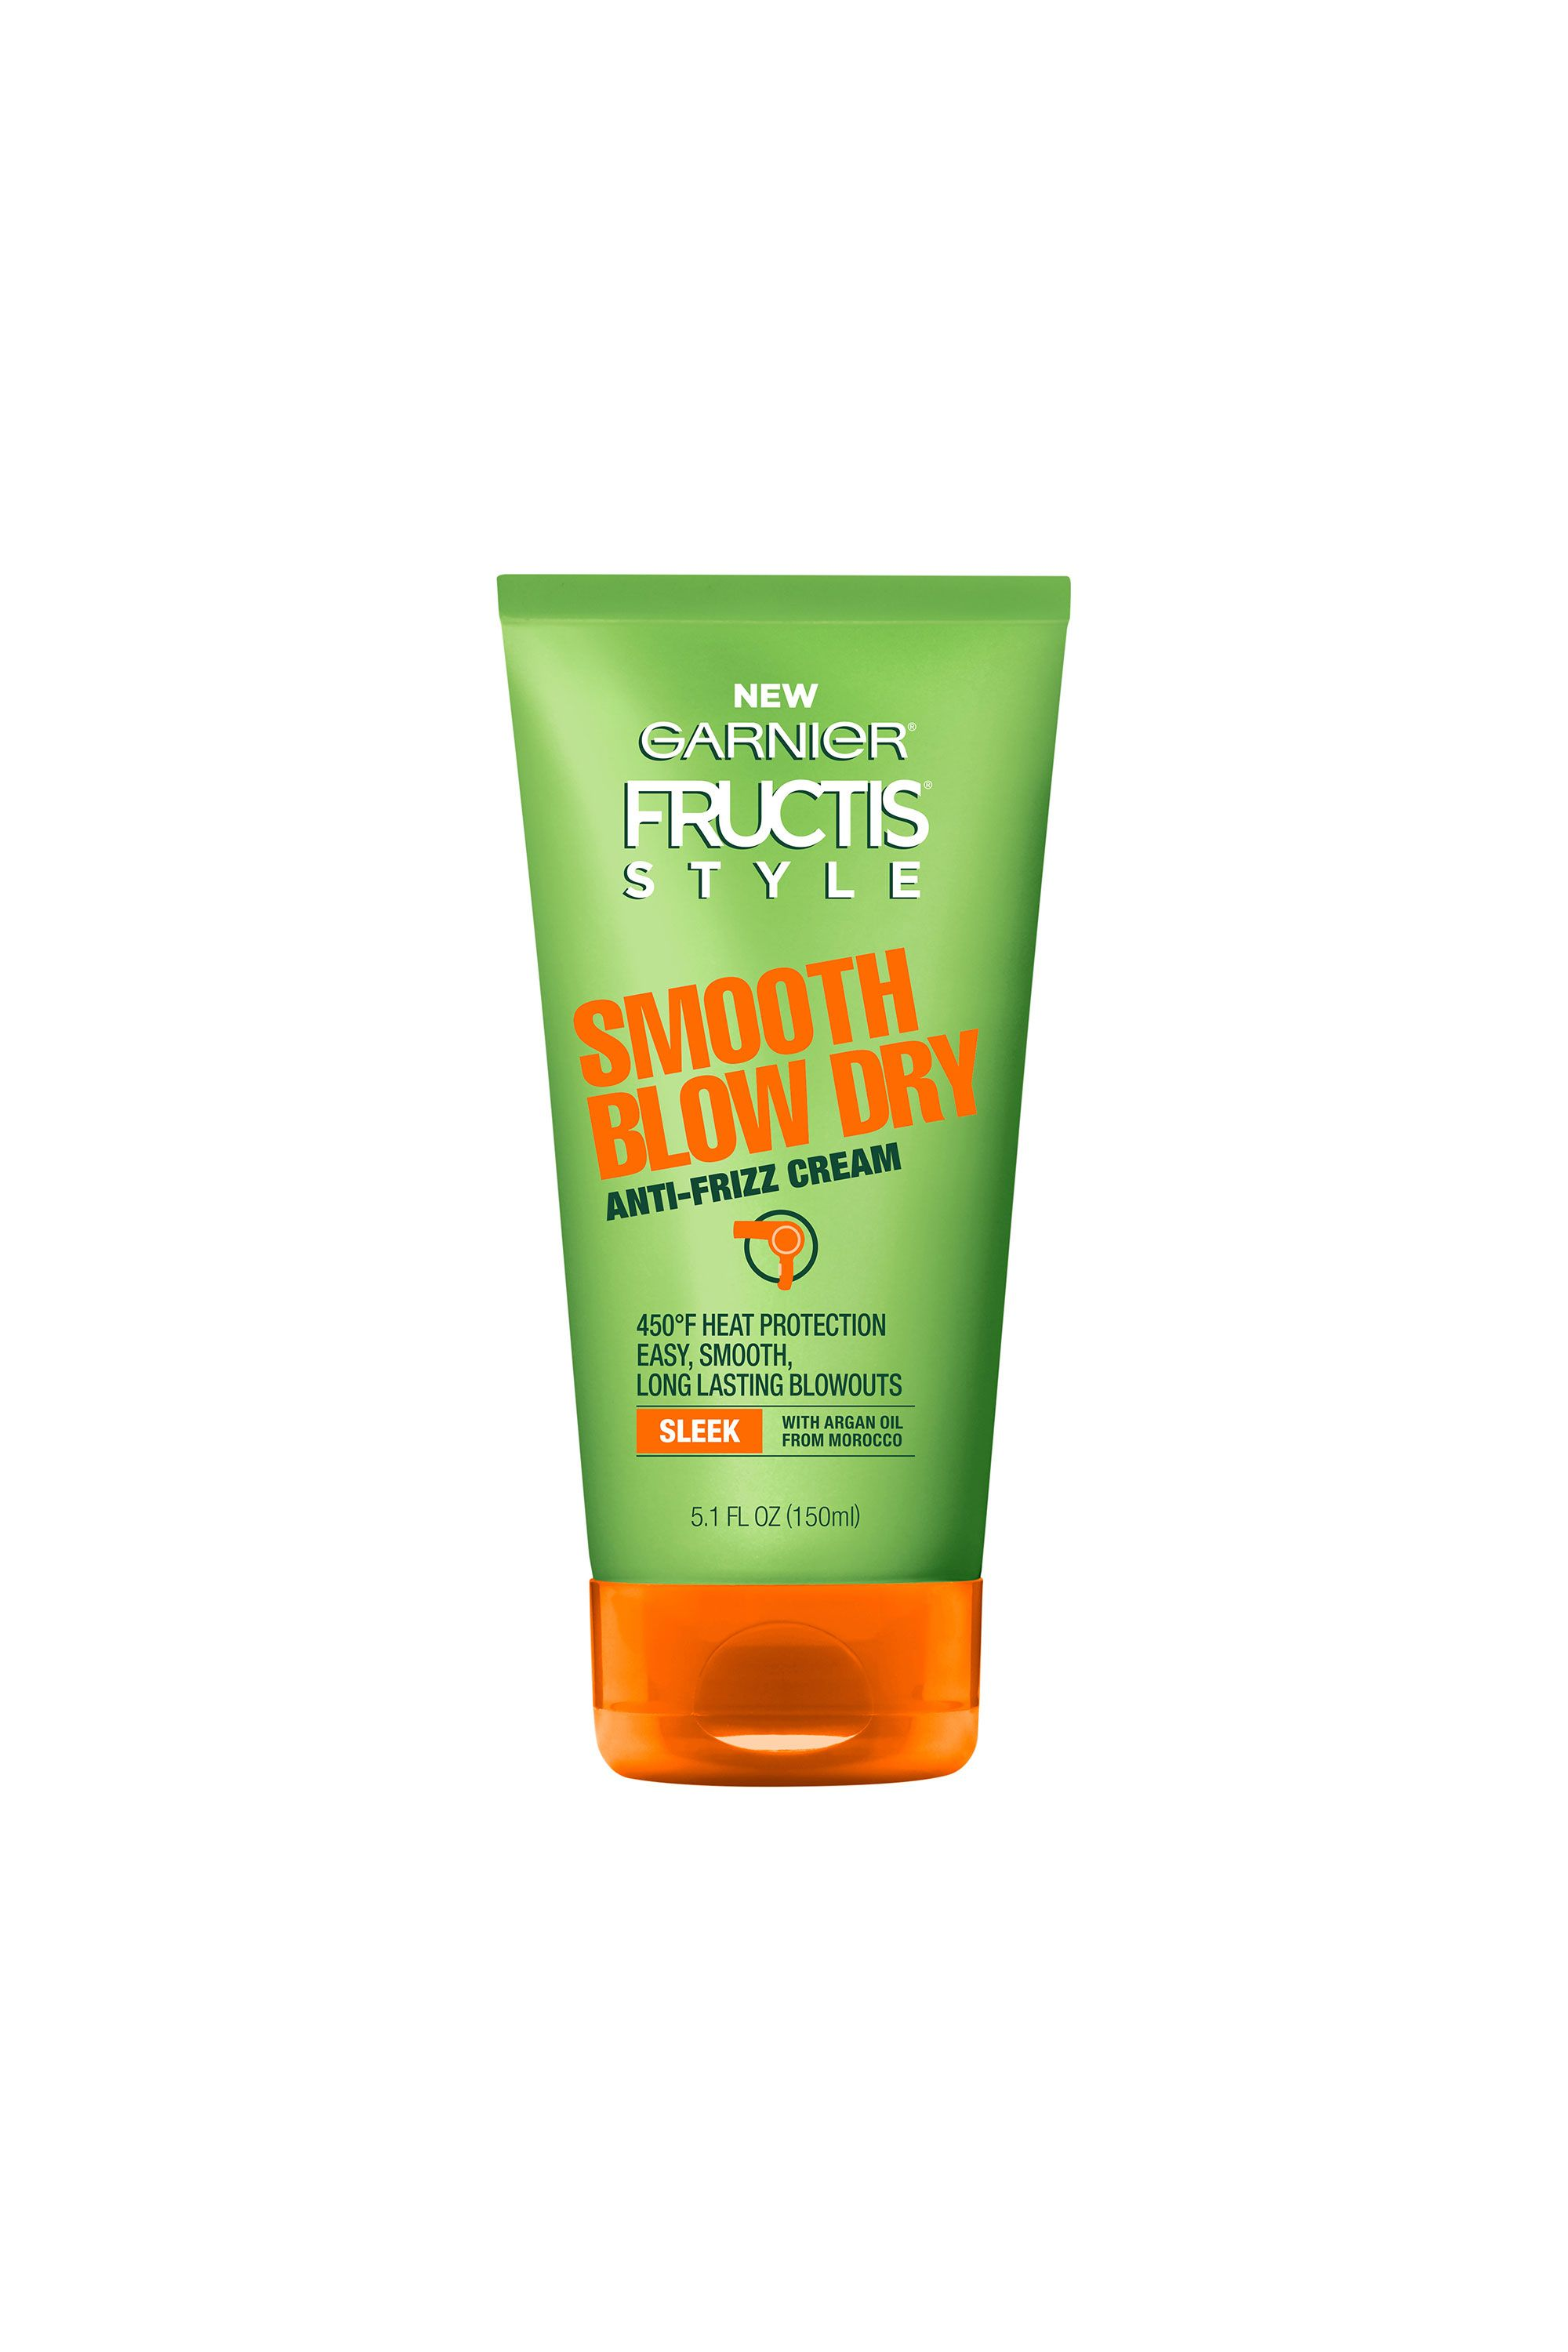 "<p>A leave-in smoothing product like <a href=""http://www.garnierusa.com/products/styling/sleek-and-smooth-hair-styling/heat-styling/smooth-blow-dry-anti-frizz-cream.aspx"">Garnier Fructis Style Smooth Blow Dry Anti-Frizz Cream</a> ($4.29) works overtime to keep strands sleek. Towel-dry your hair (blot, don't rub), then rake a quarter-size dollop of cream from roots to ends with your fingers. Blow-dry if you must, or try an off-the-neck braid and call it a day.</p>"